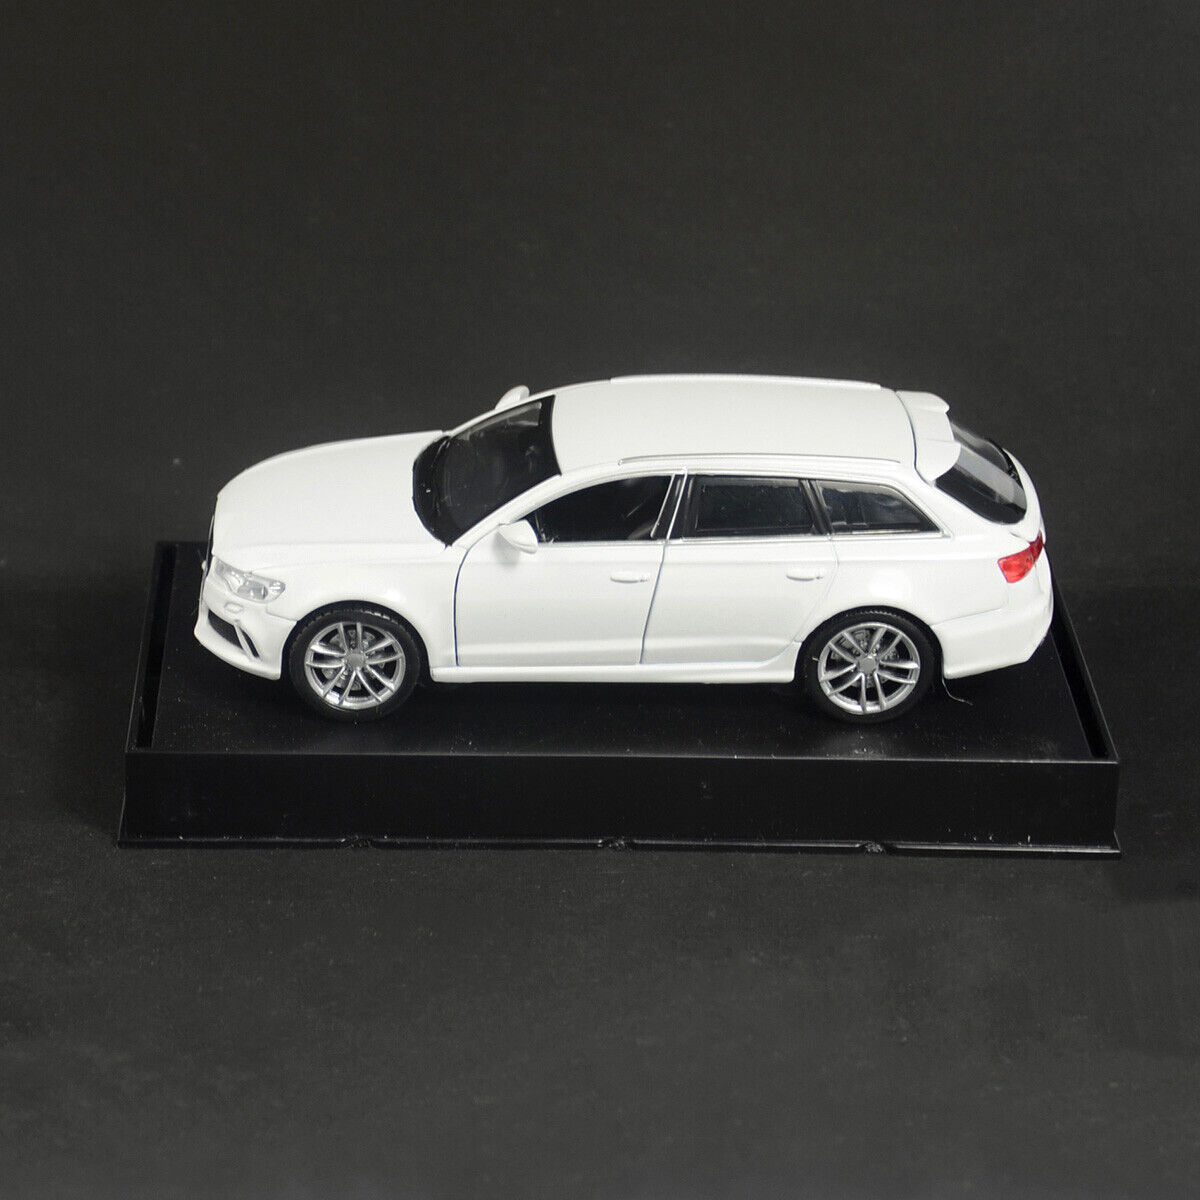 1:32 Audi RS6 Quattro Car Model Alloy Diecast Toy Vehicle White Gift Pull Back